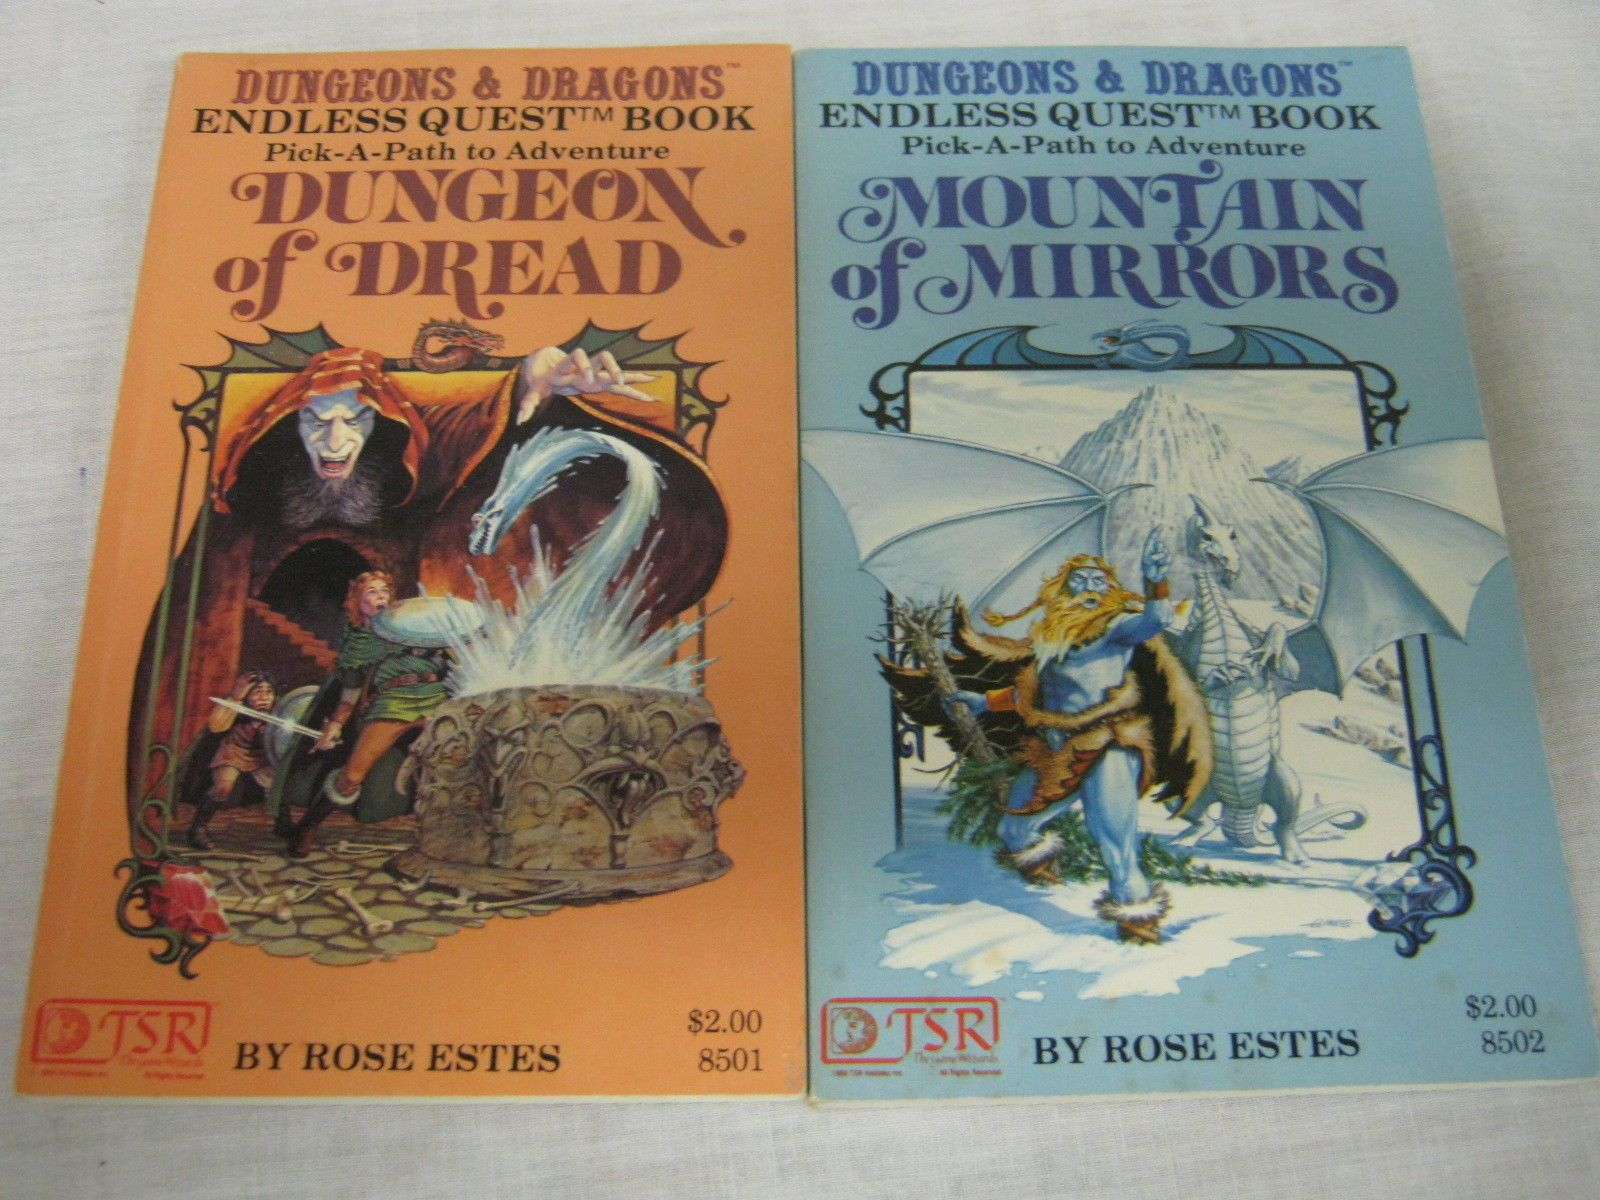 Dungeons dragons endless quest books pick a path to adventure dungeons dragons endless quest books pick a path to adventure fandeluxe Gallery